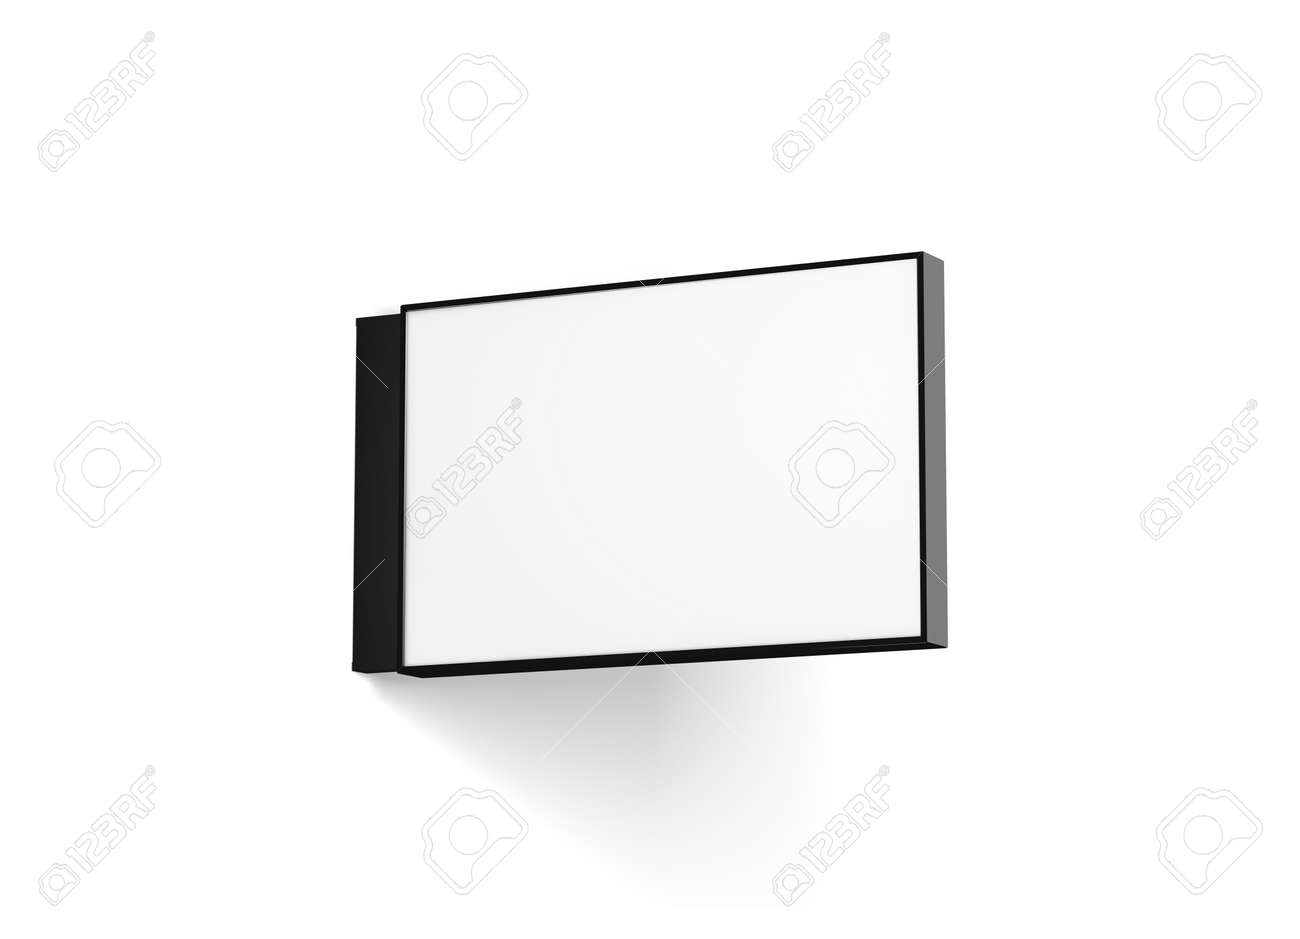 blank horizontal store signage design mockup isolated 3d rendering